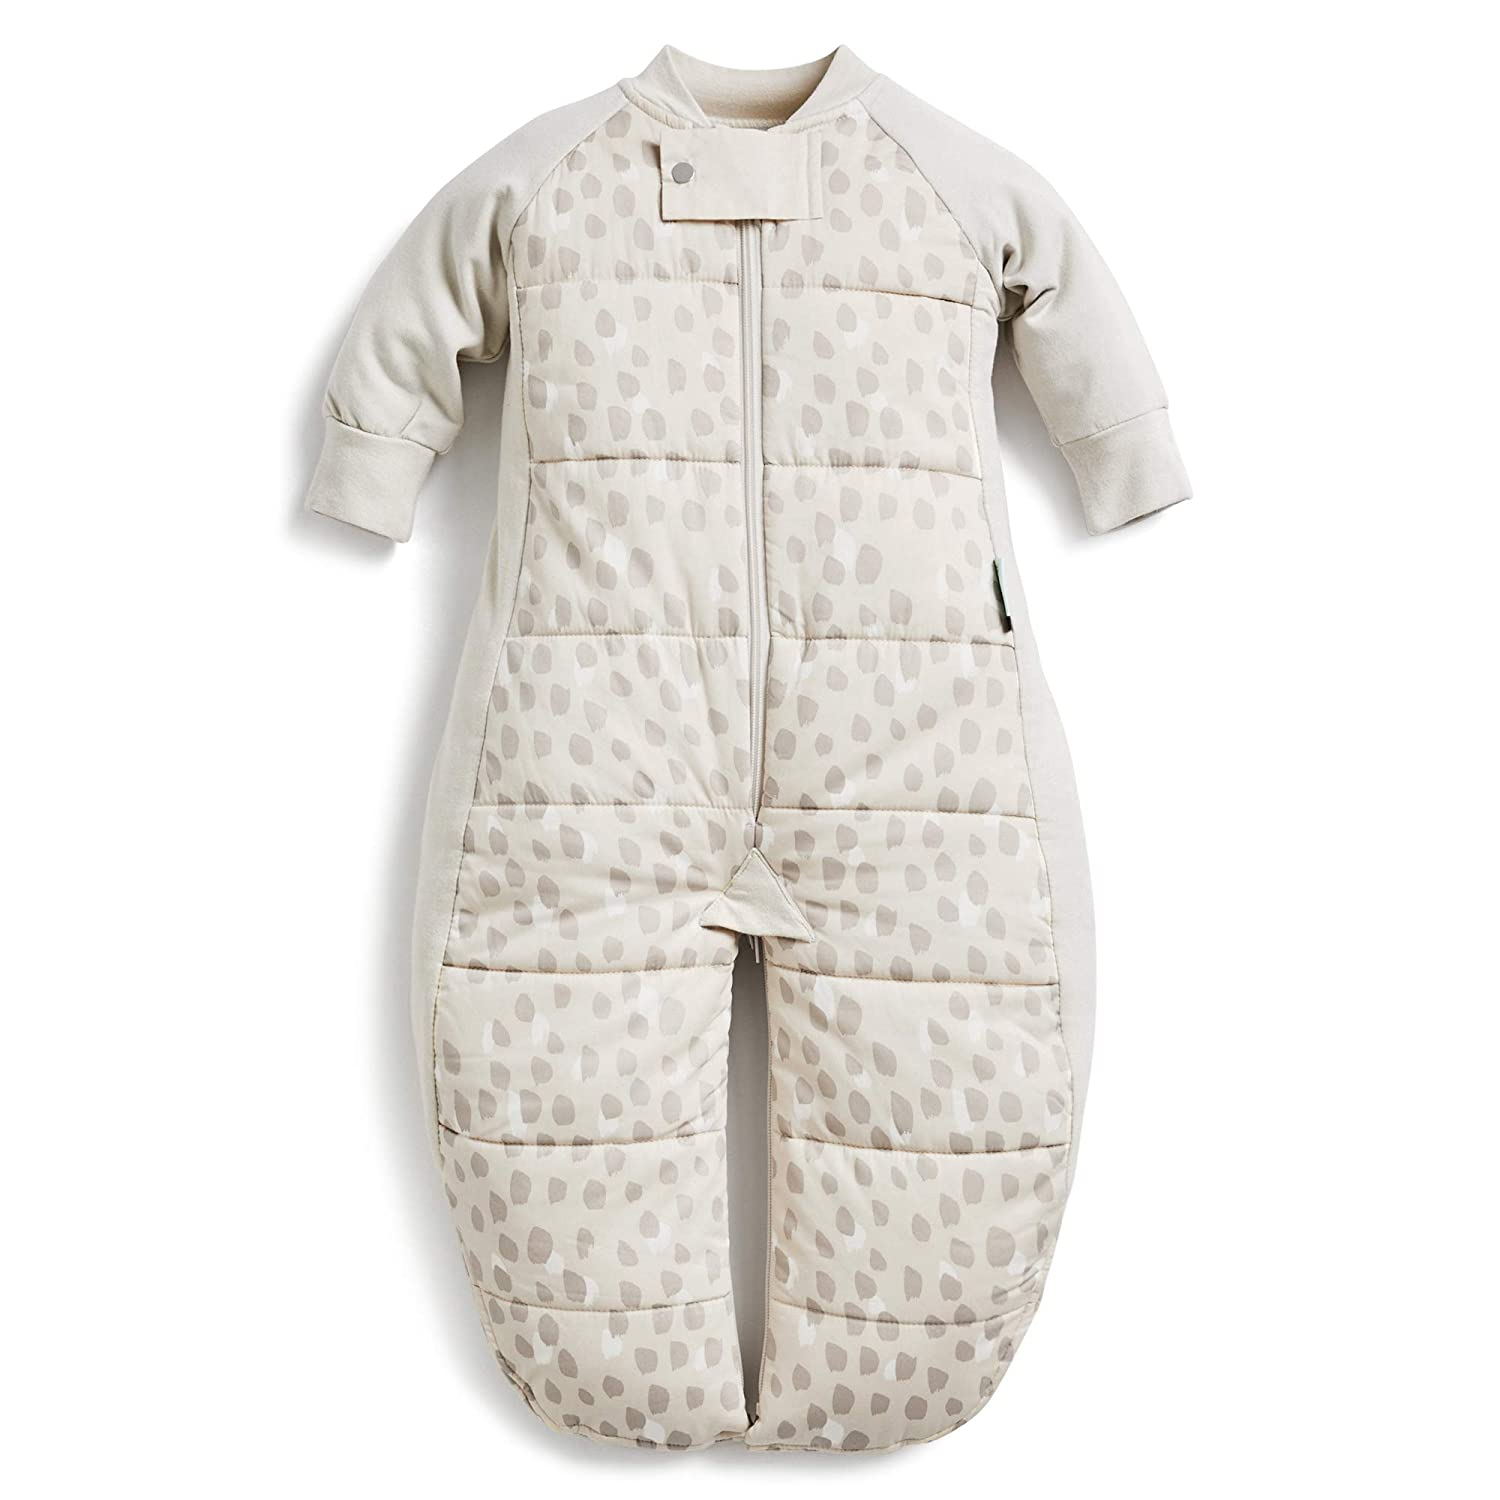 ergoPouch 2.5 TOG Sleep Suit Bag 100% Organic Cotton Filling with Cotton Sleeves and fold Over Mitts. 2 in 1 Wearable Blanket Sleeping Bag converts to Sleep Suit with Legs (Fawn, 2-12 Months)